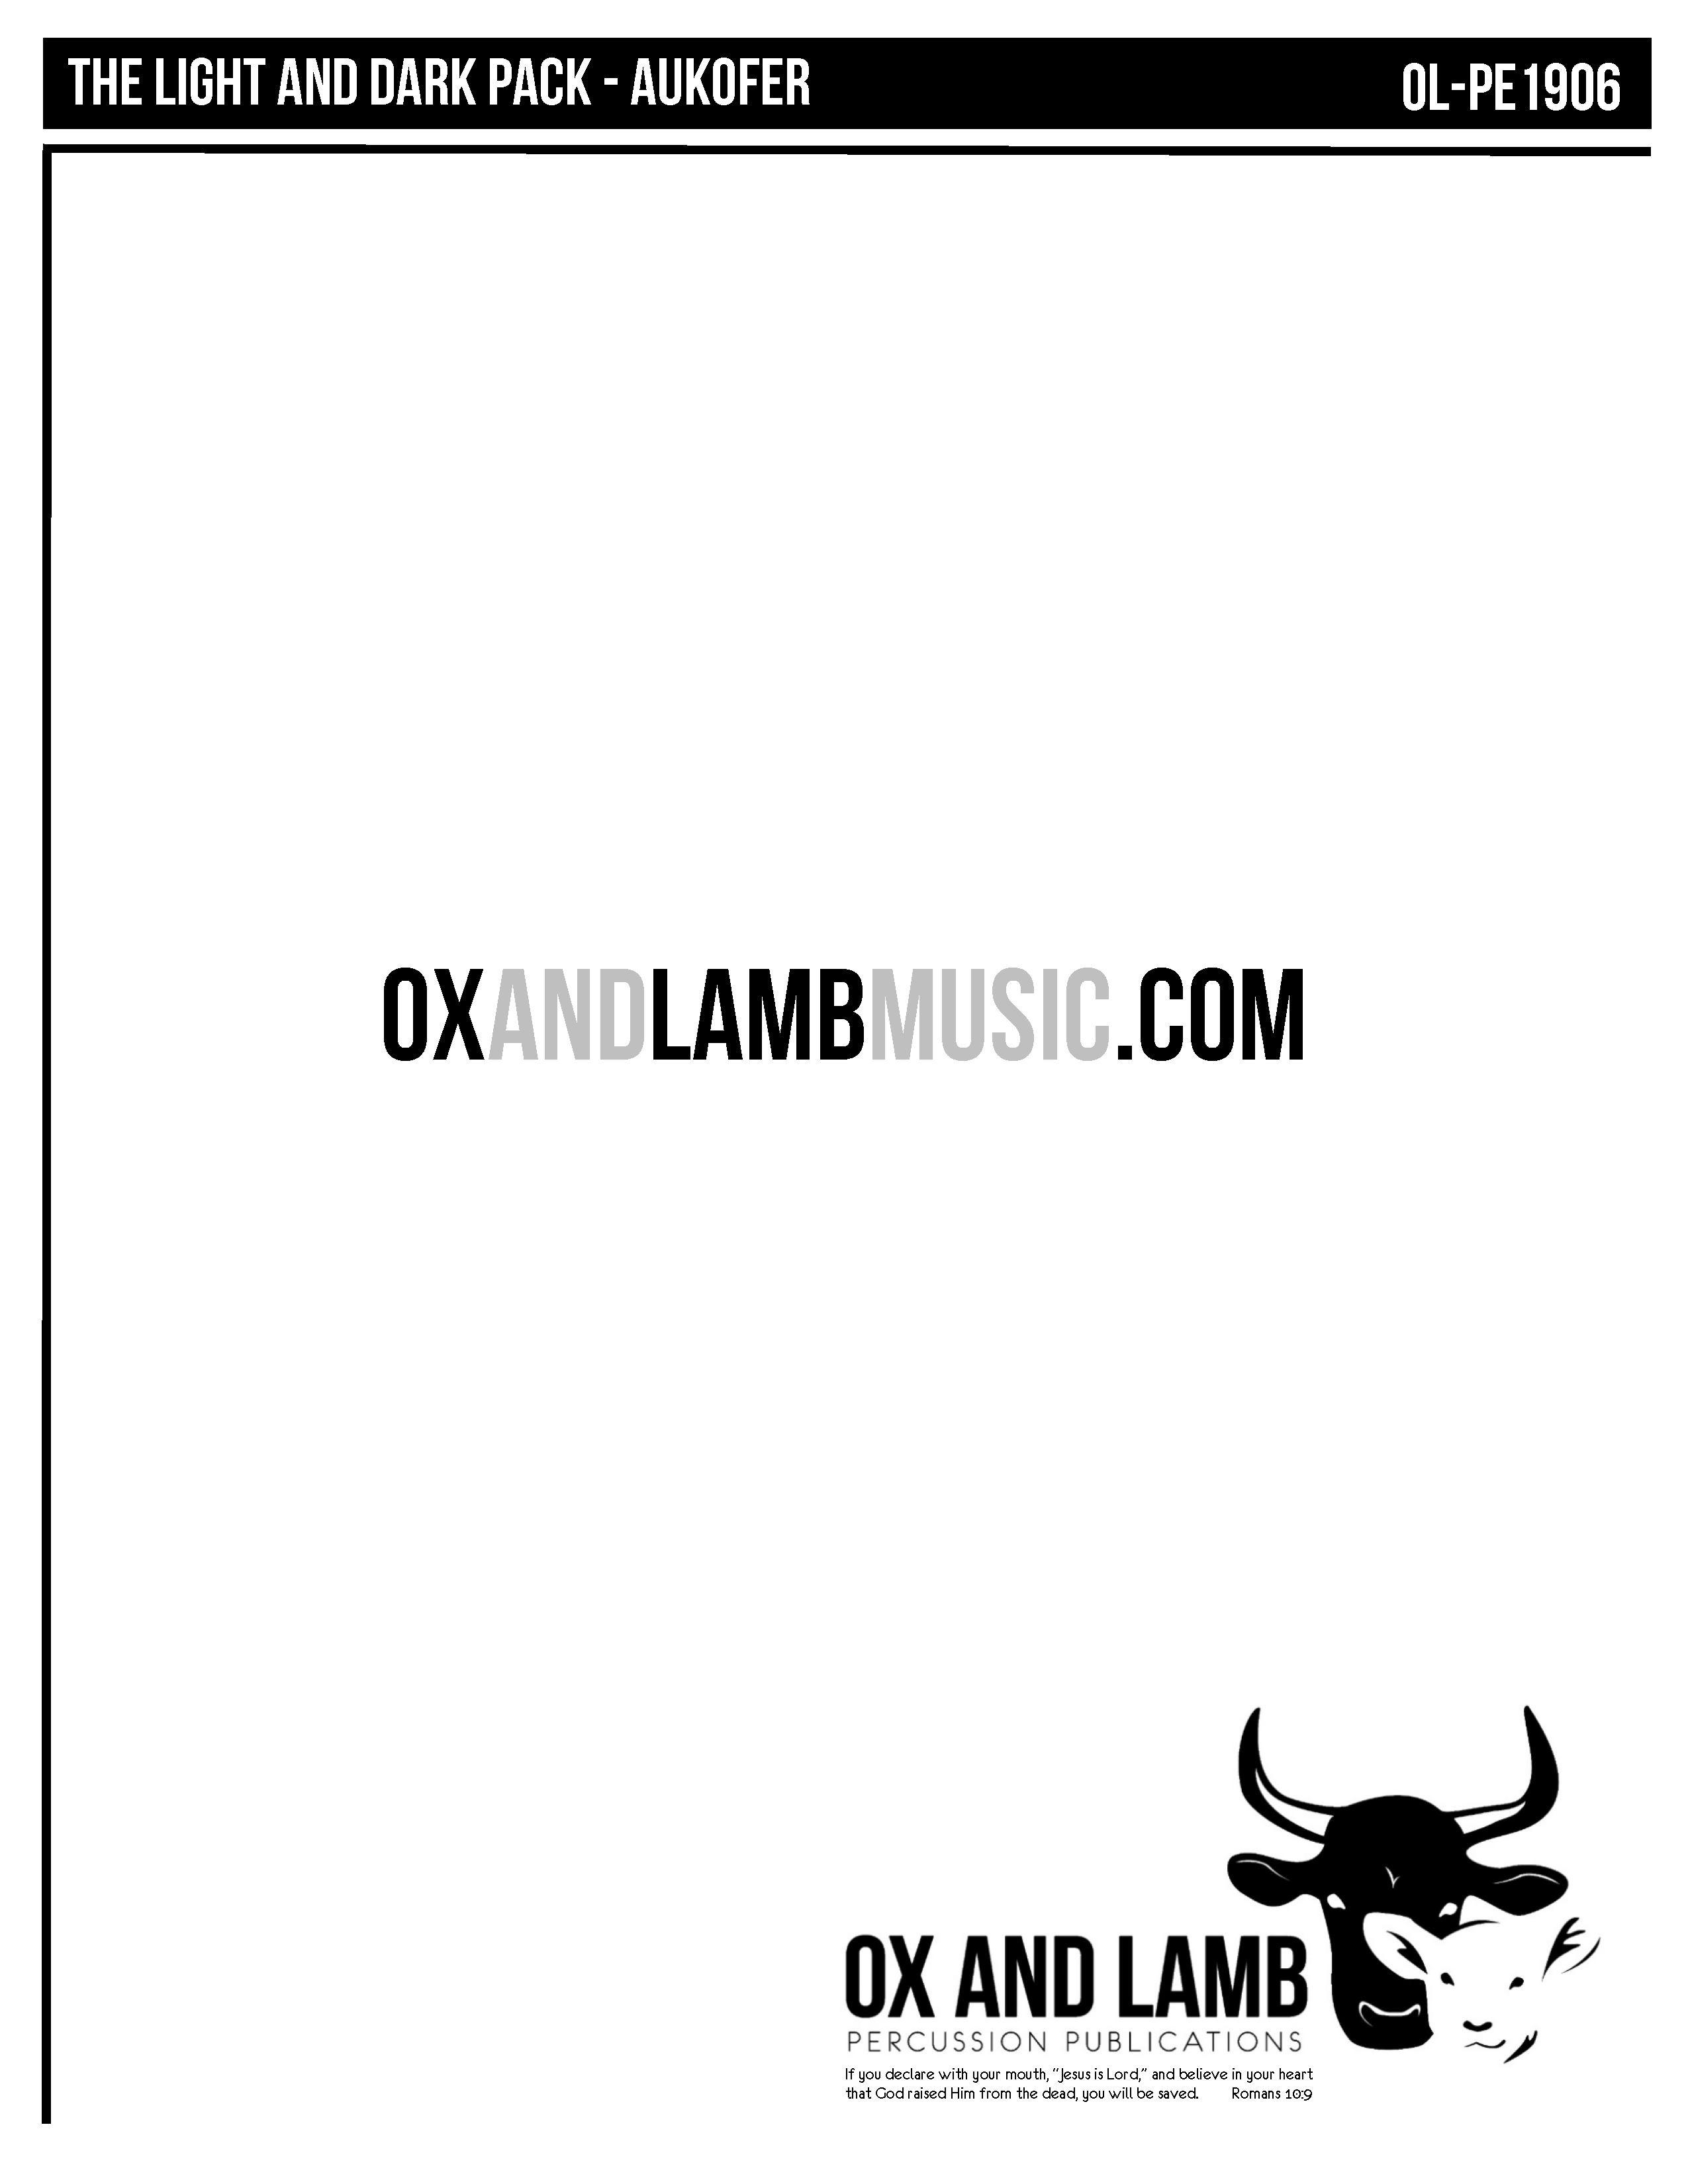 The Light And Dark Pack Ox And Lamb Percussion Publications